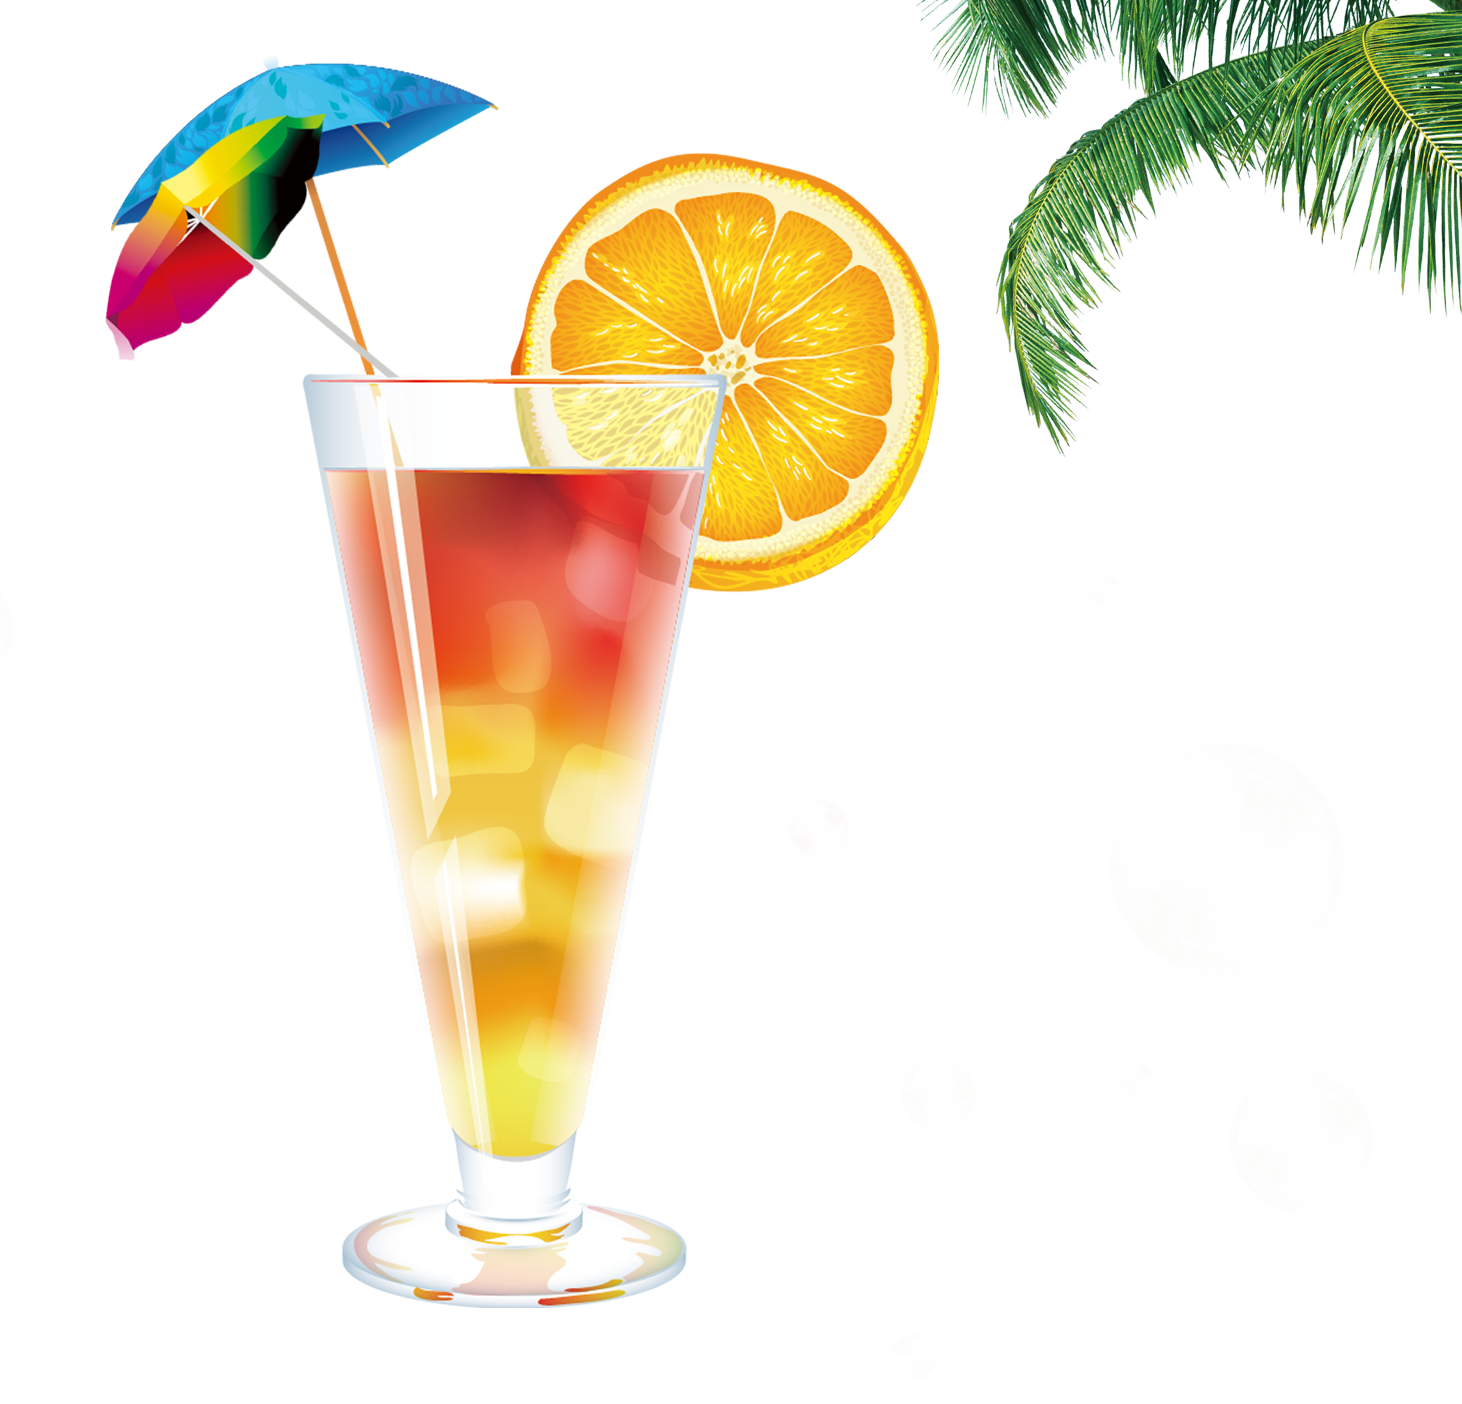 Cocktail clipart punch drink. Juice mojito screwdriver tequila